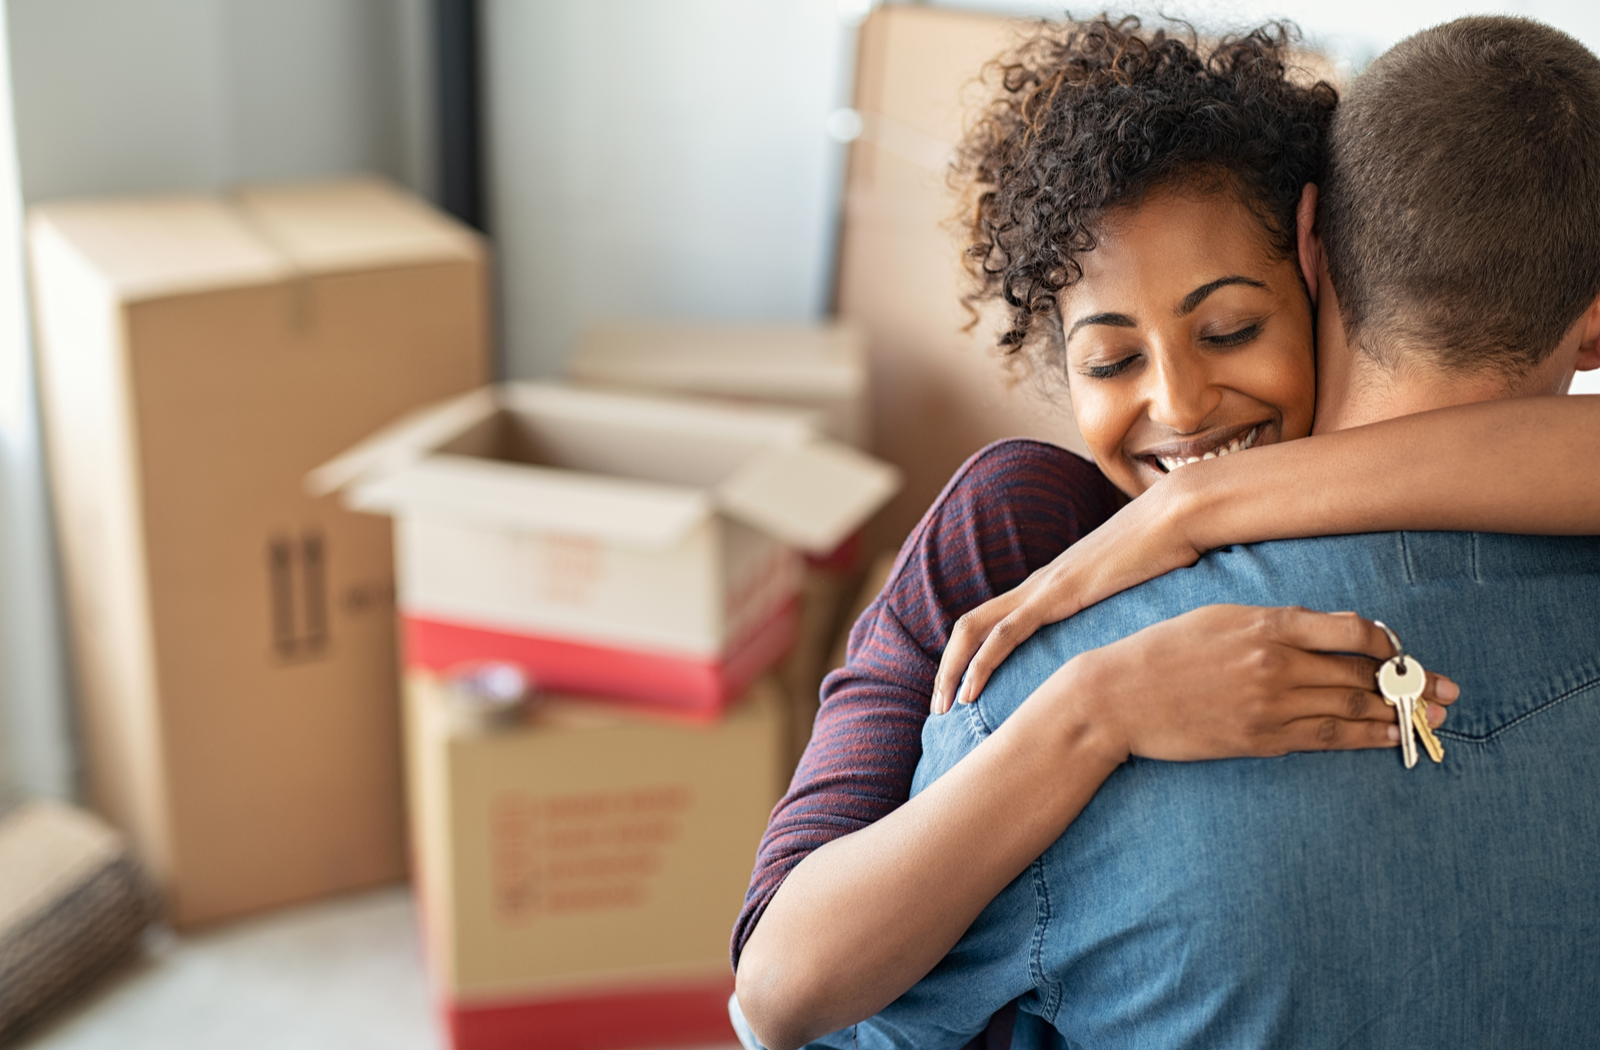 a woman hugging her partner holding keys to their new home with moving boxes in the back